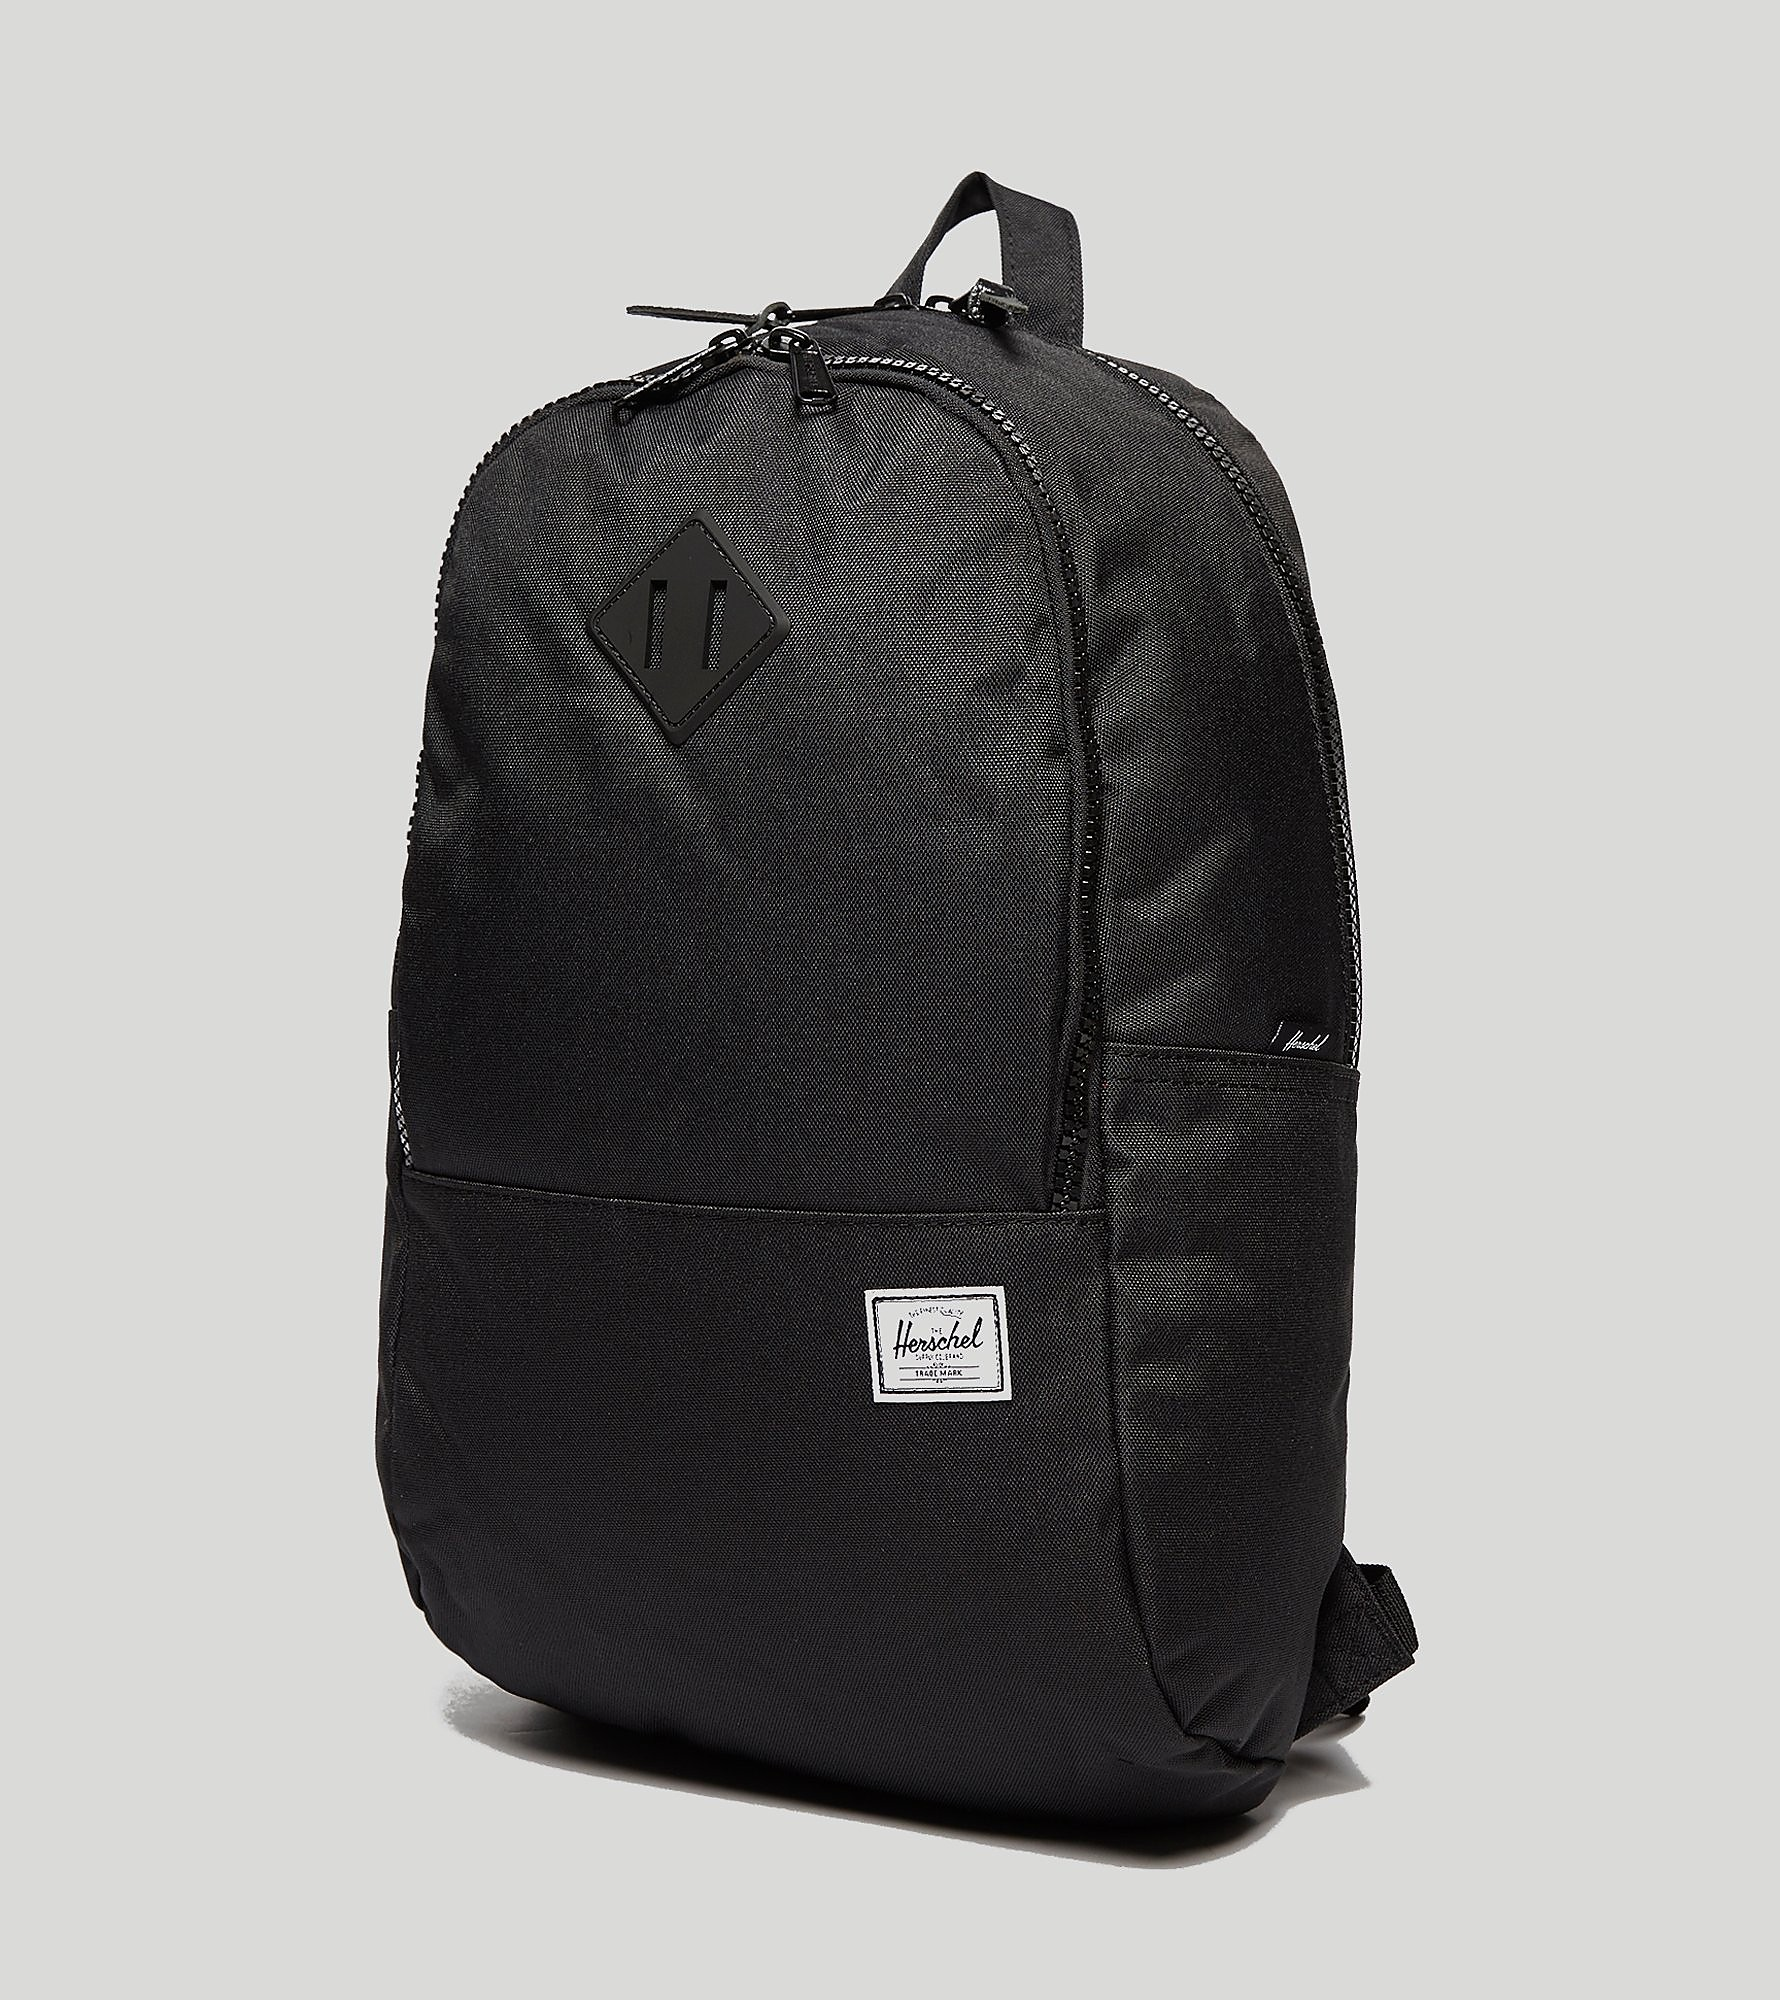 Herschel Supply Co Aspect Nelson Backpack